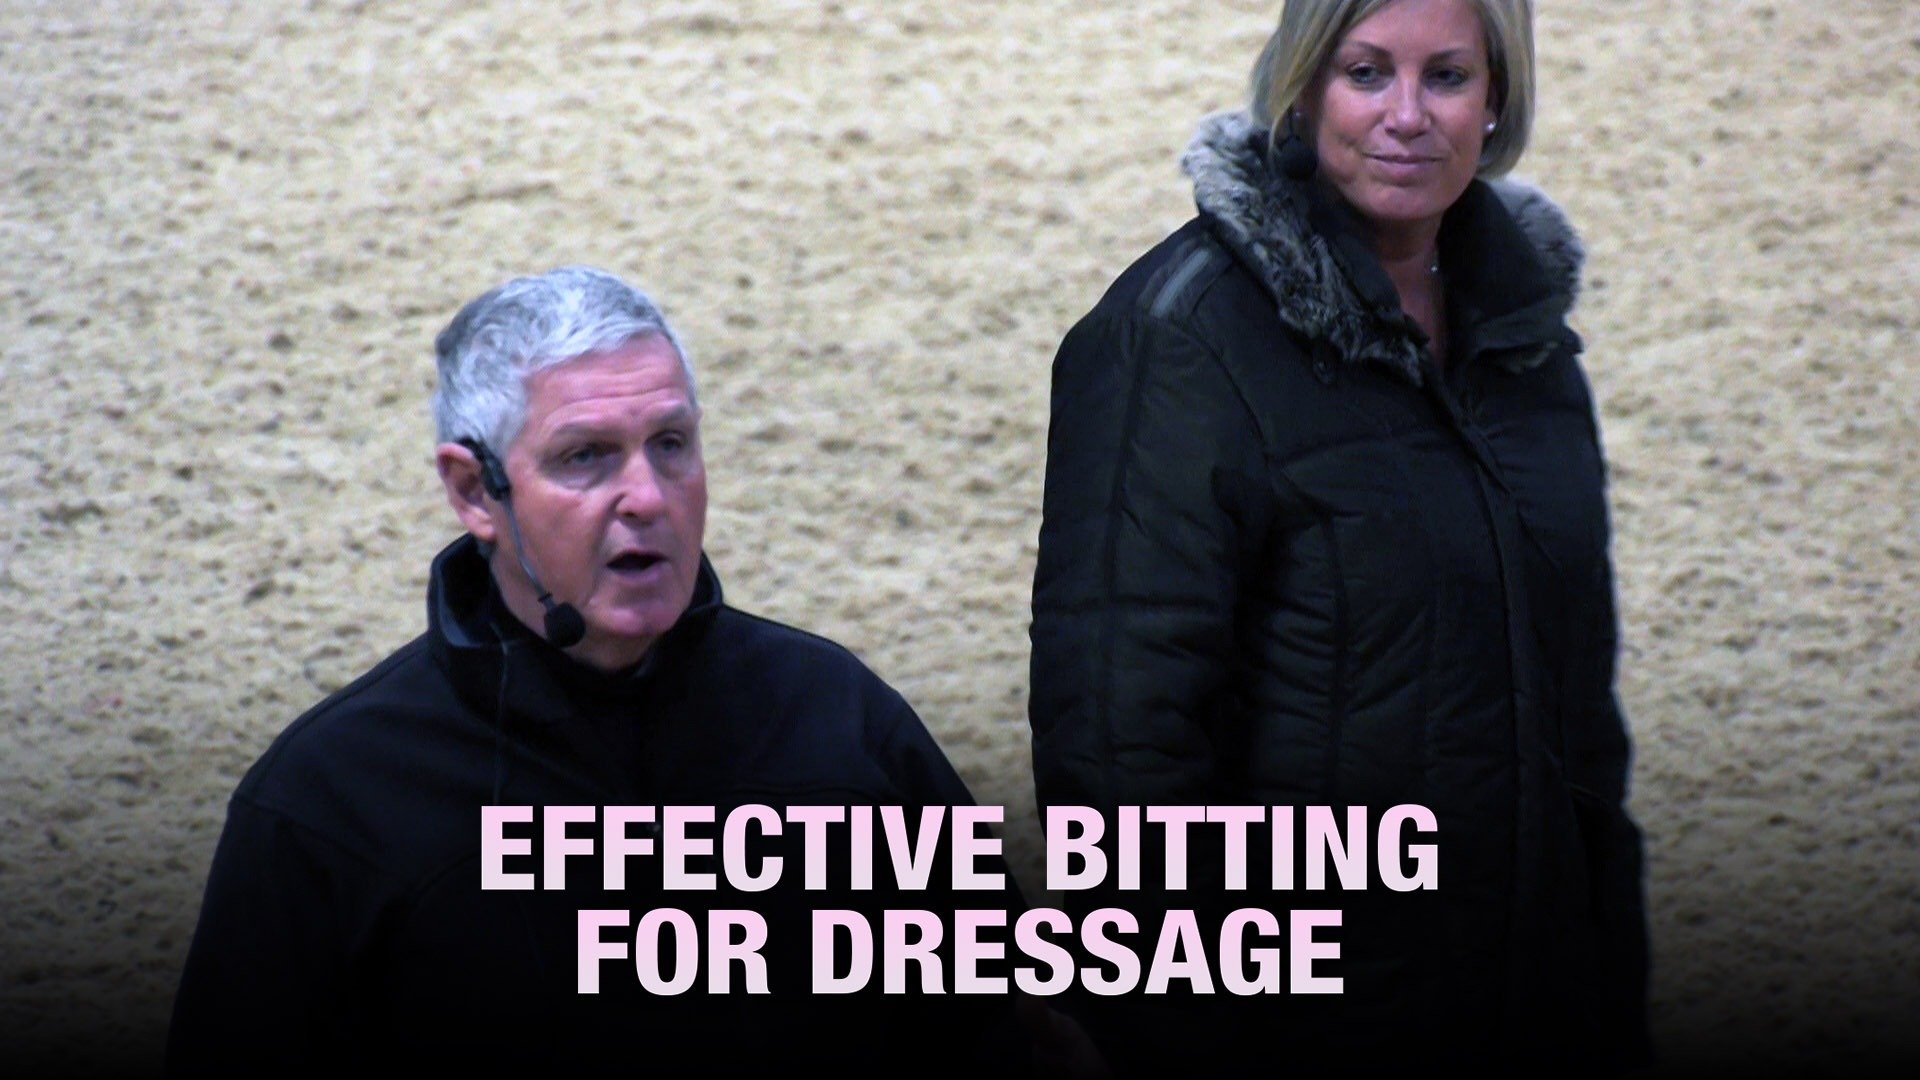 Effective Bitting for Dressage